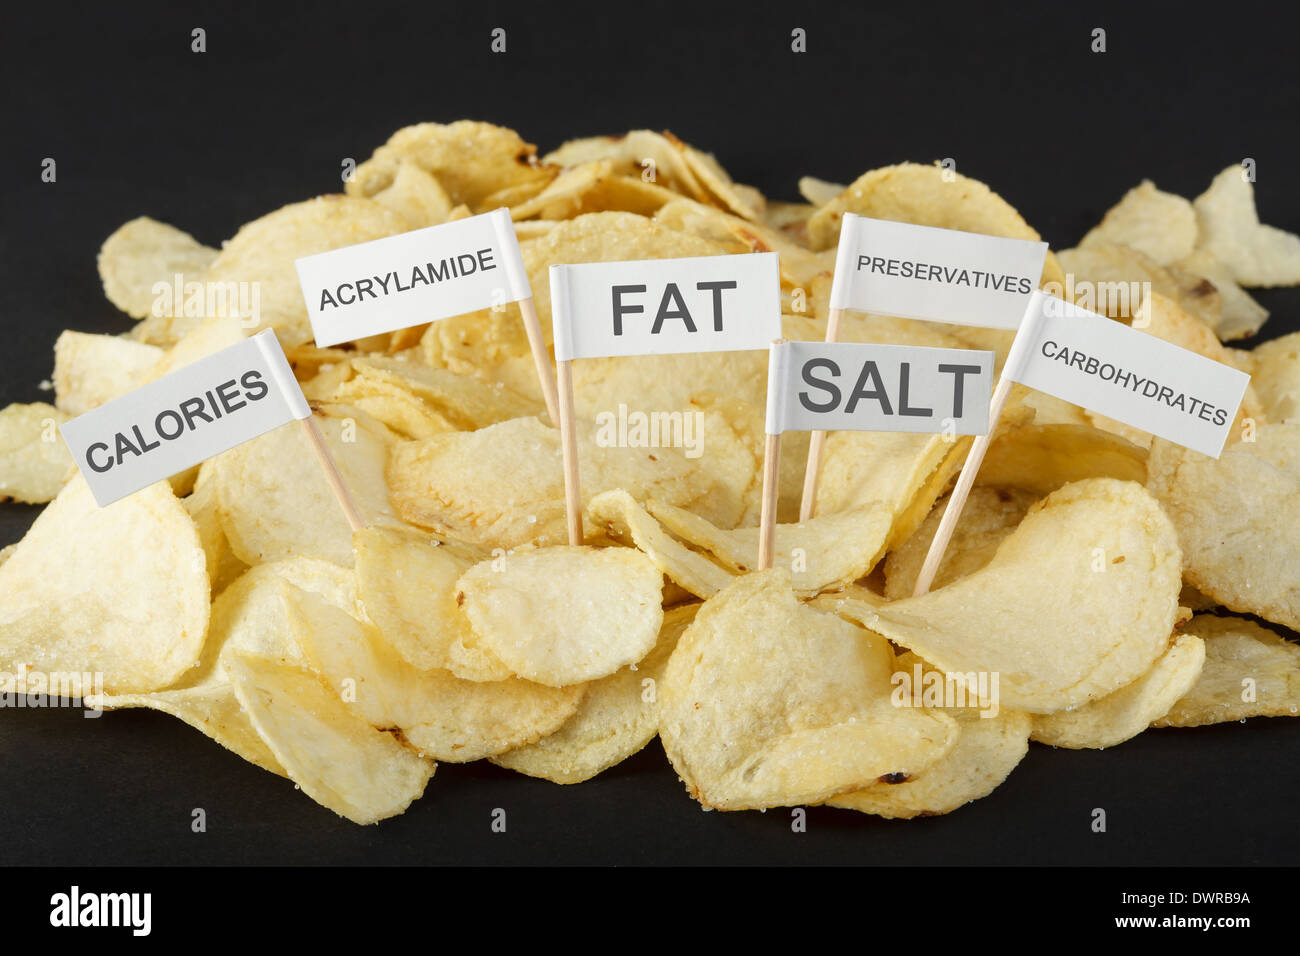 Junk food concept. Potato chips and flags showing unhealthy ingredients - Stock Image